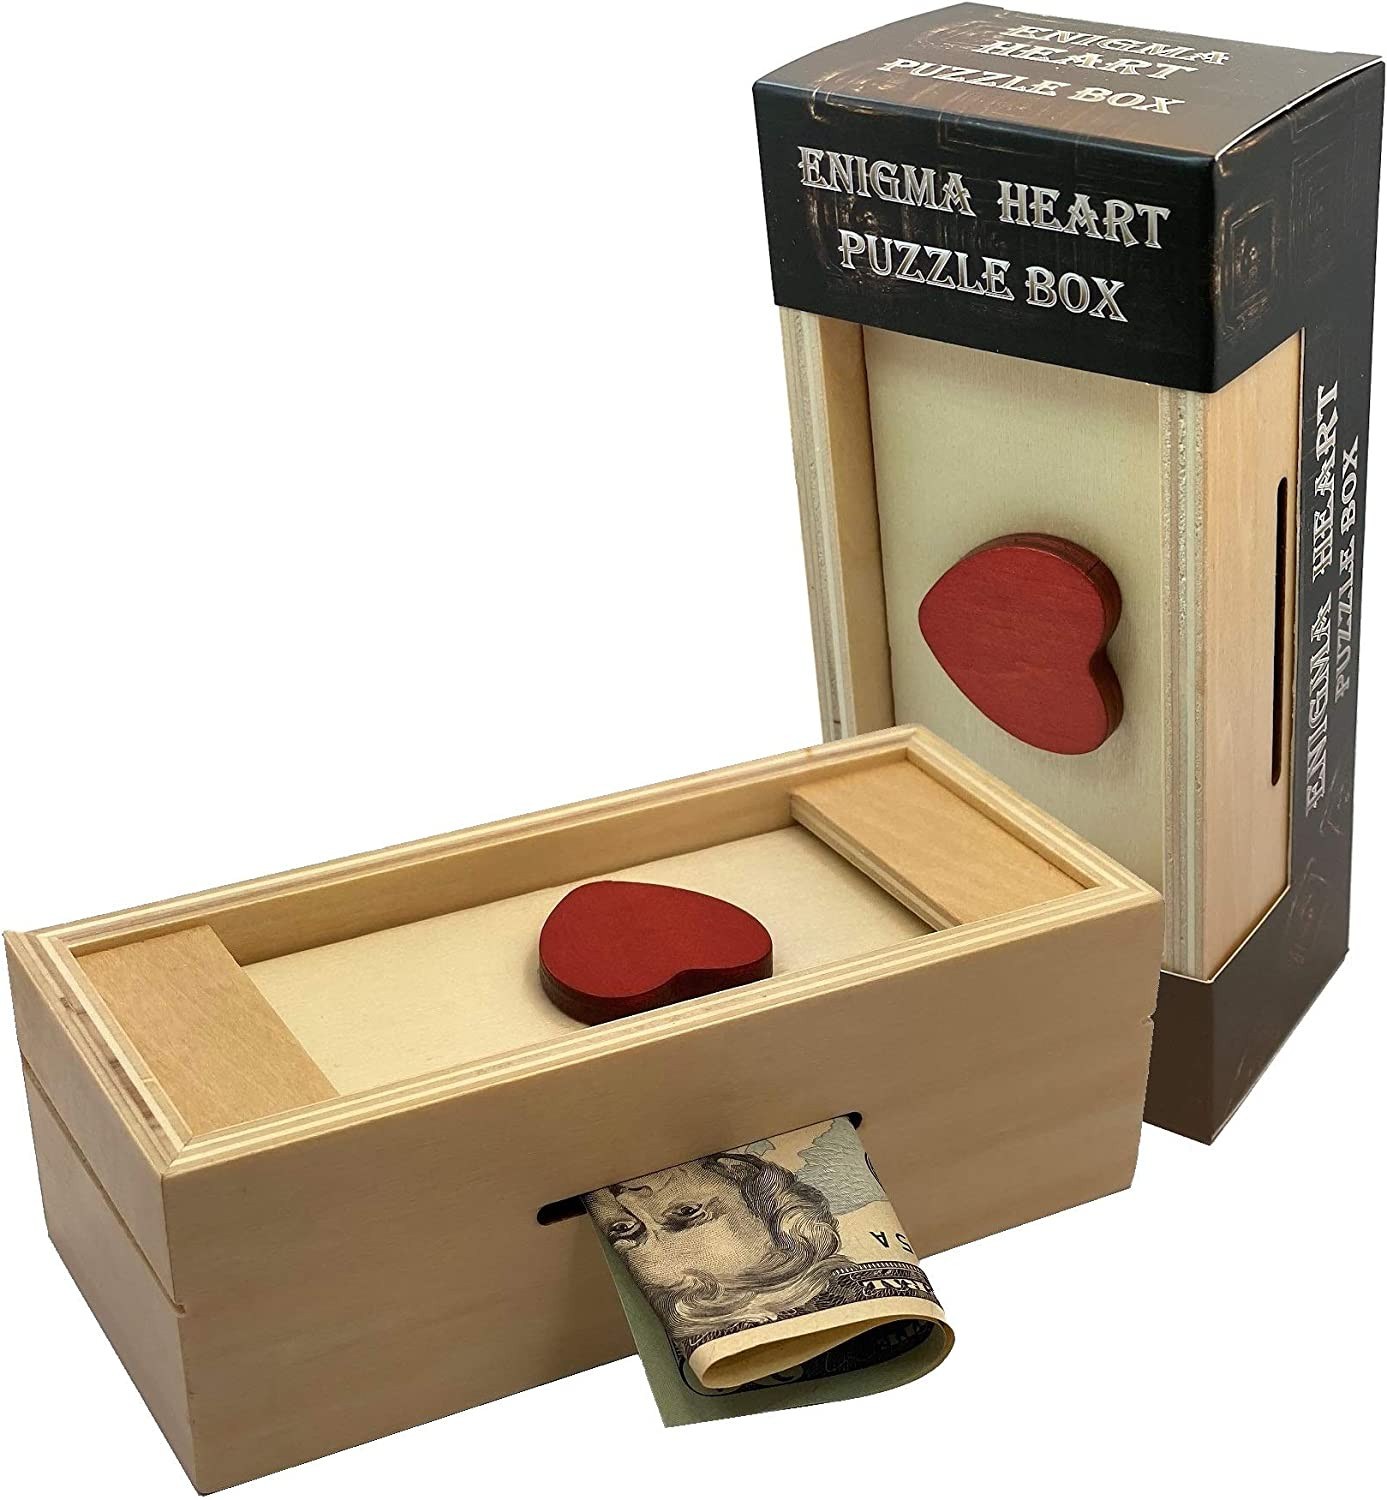 Puzzle Box Enigma Heart Secret - Money and Gift Card Holder in a Wooden Magic Trick Lock with Hidden Compartment Piggy Bank Brain Teaser Game